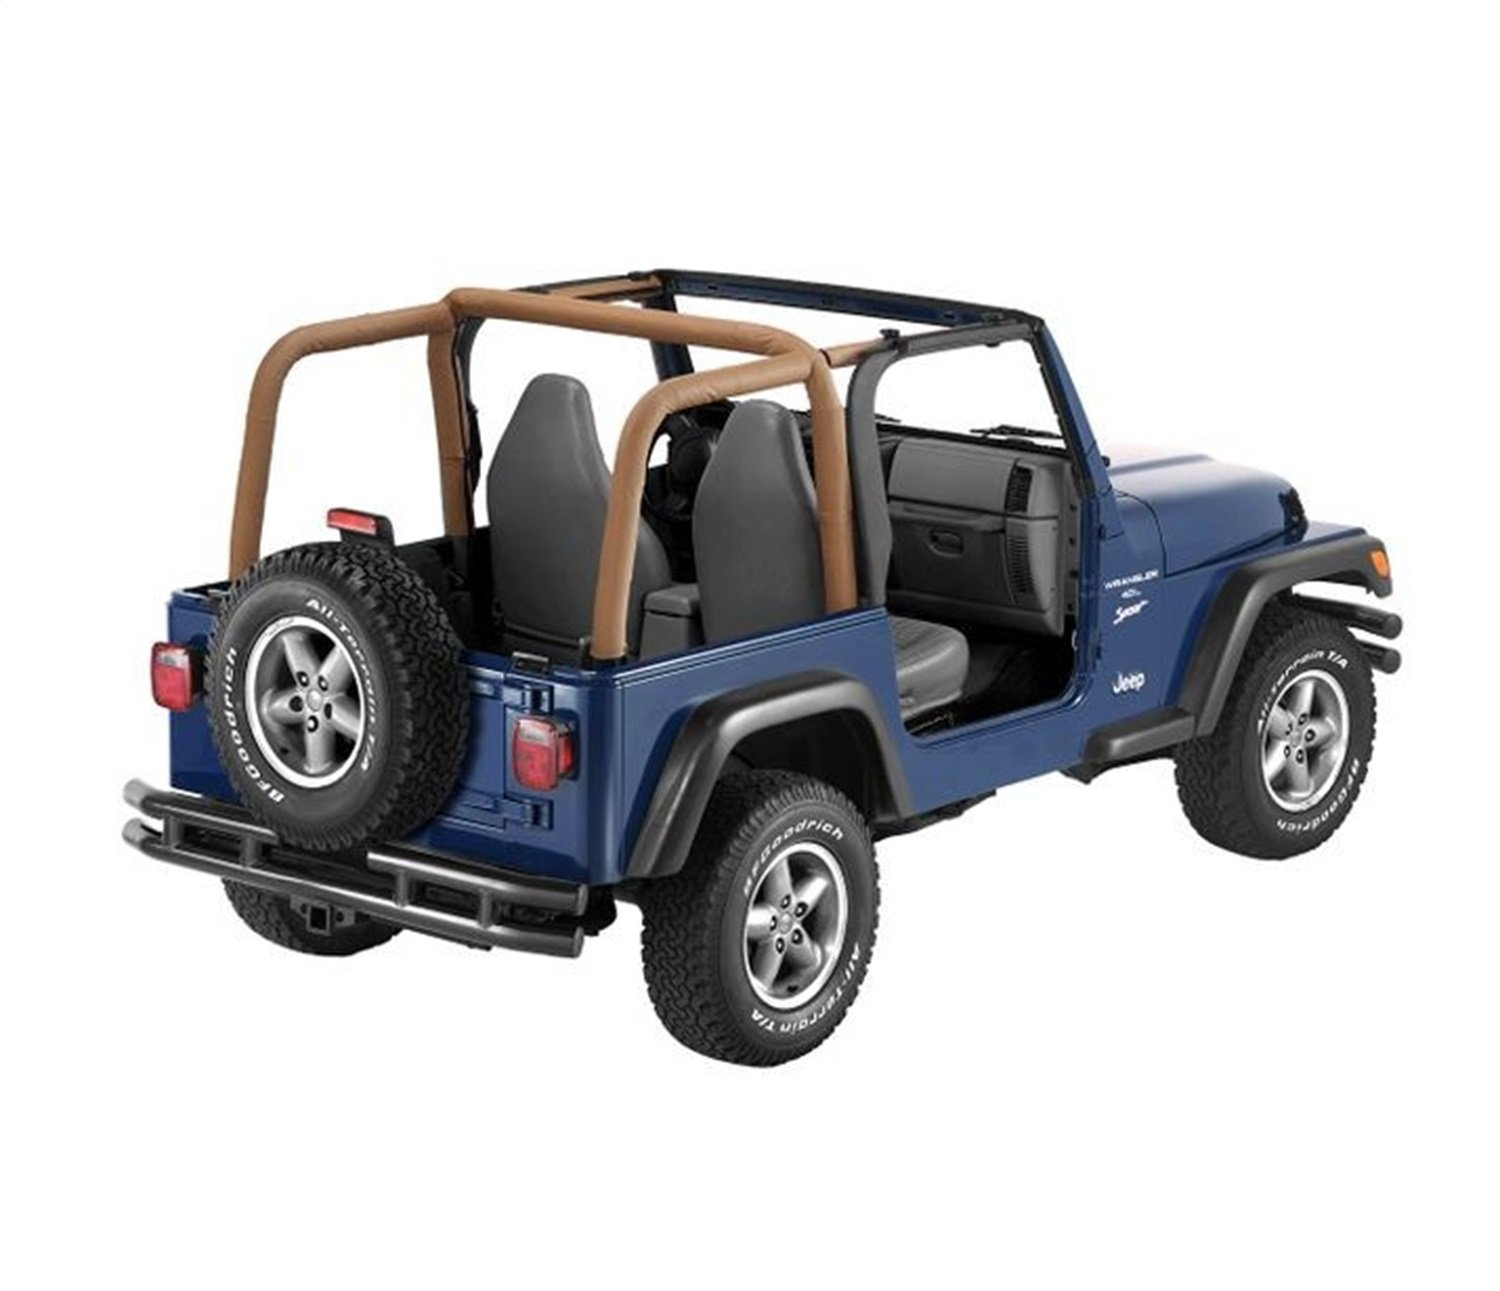 Bestop 80020-37 Spice Sport Bar Cover for 1997-2002 Wrangler TJ with or Without Factory soundbar by Bestop (Image #1)